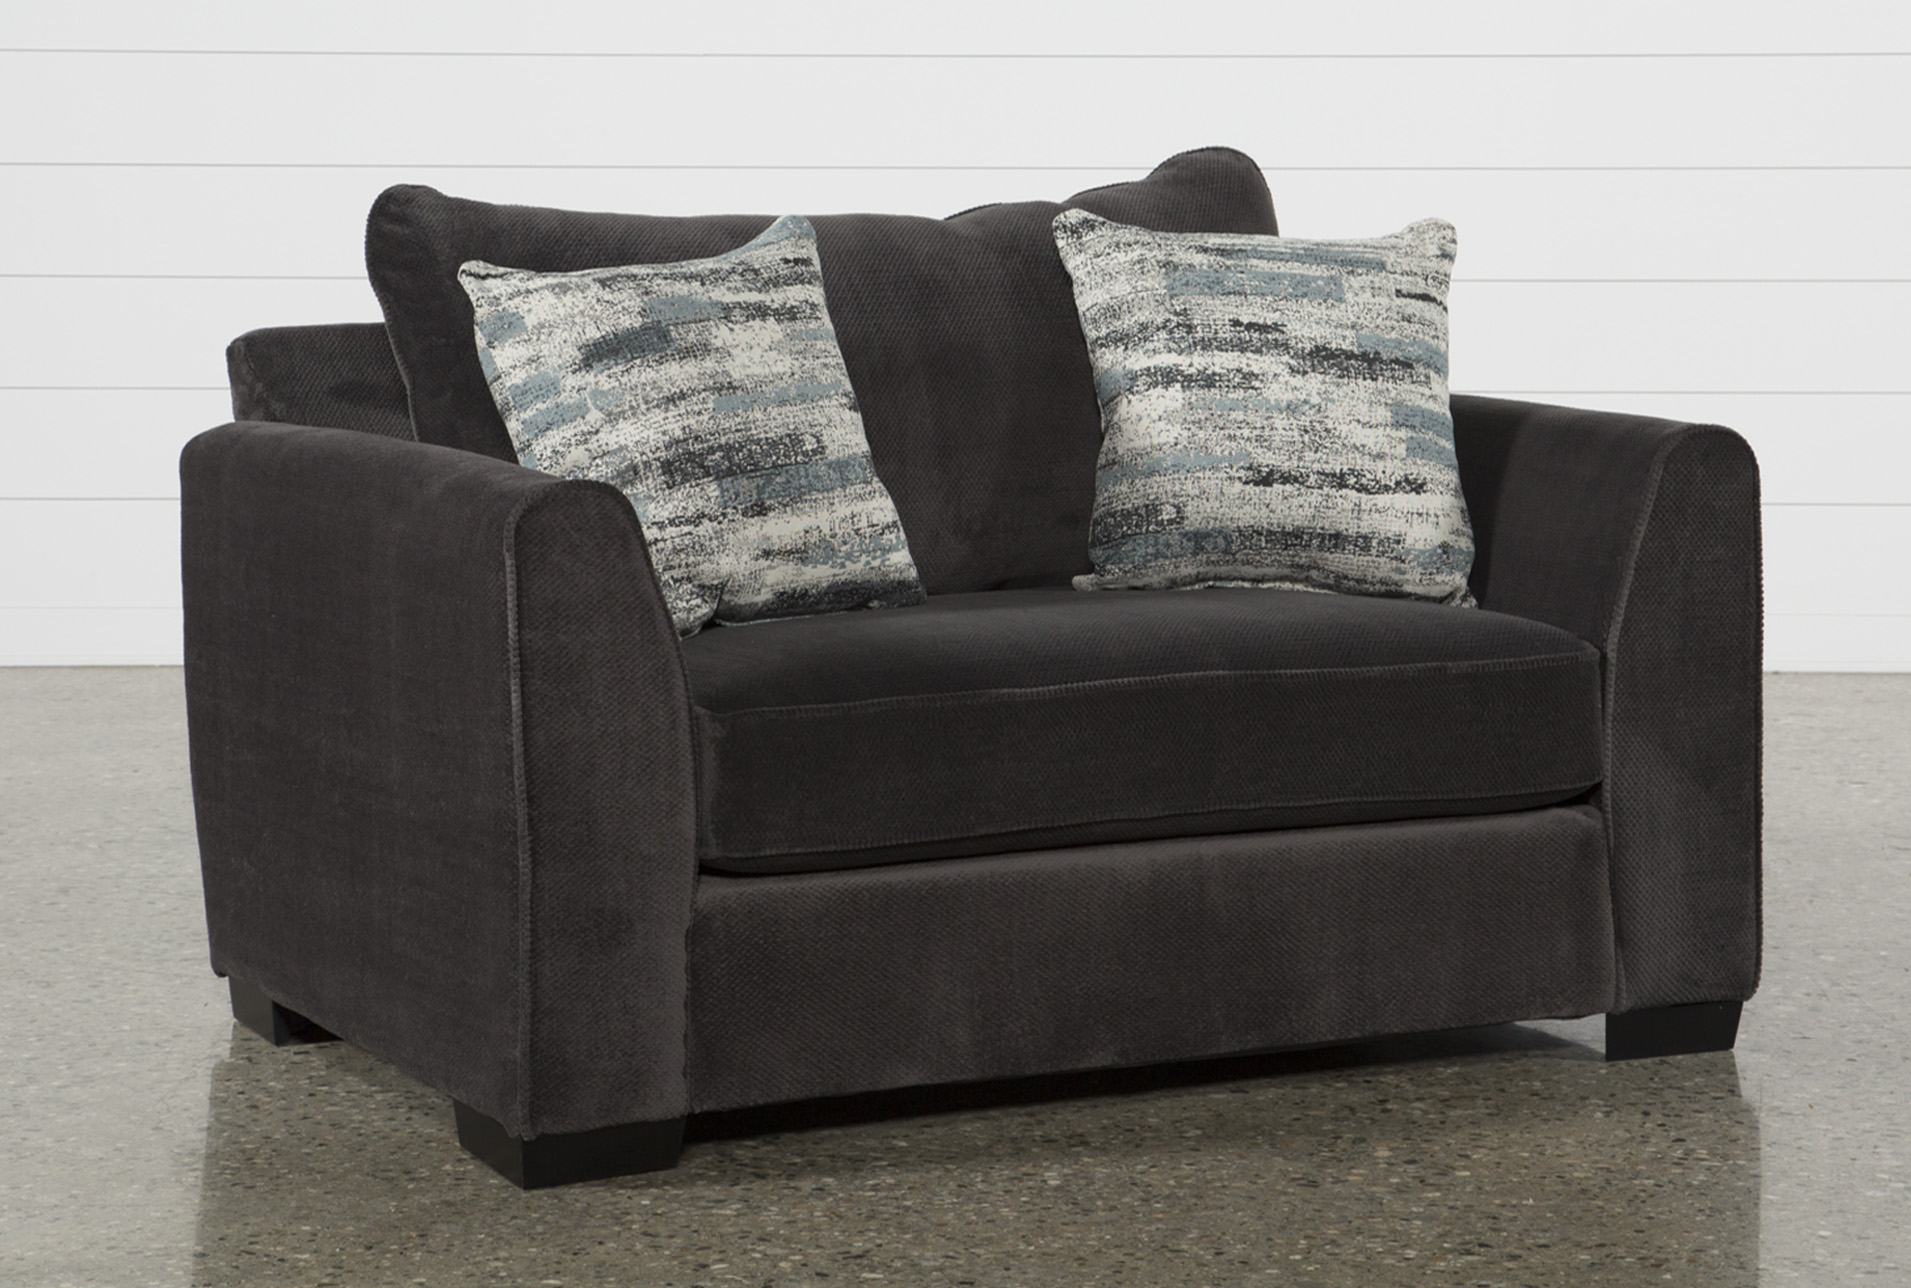 Beau Sheldon Oversized Chair (Qty: 1) Has Been Successfully Added To Your Cart.